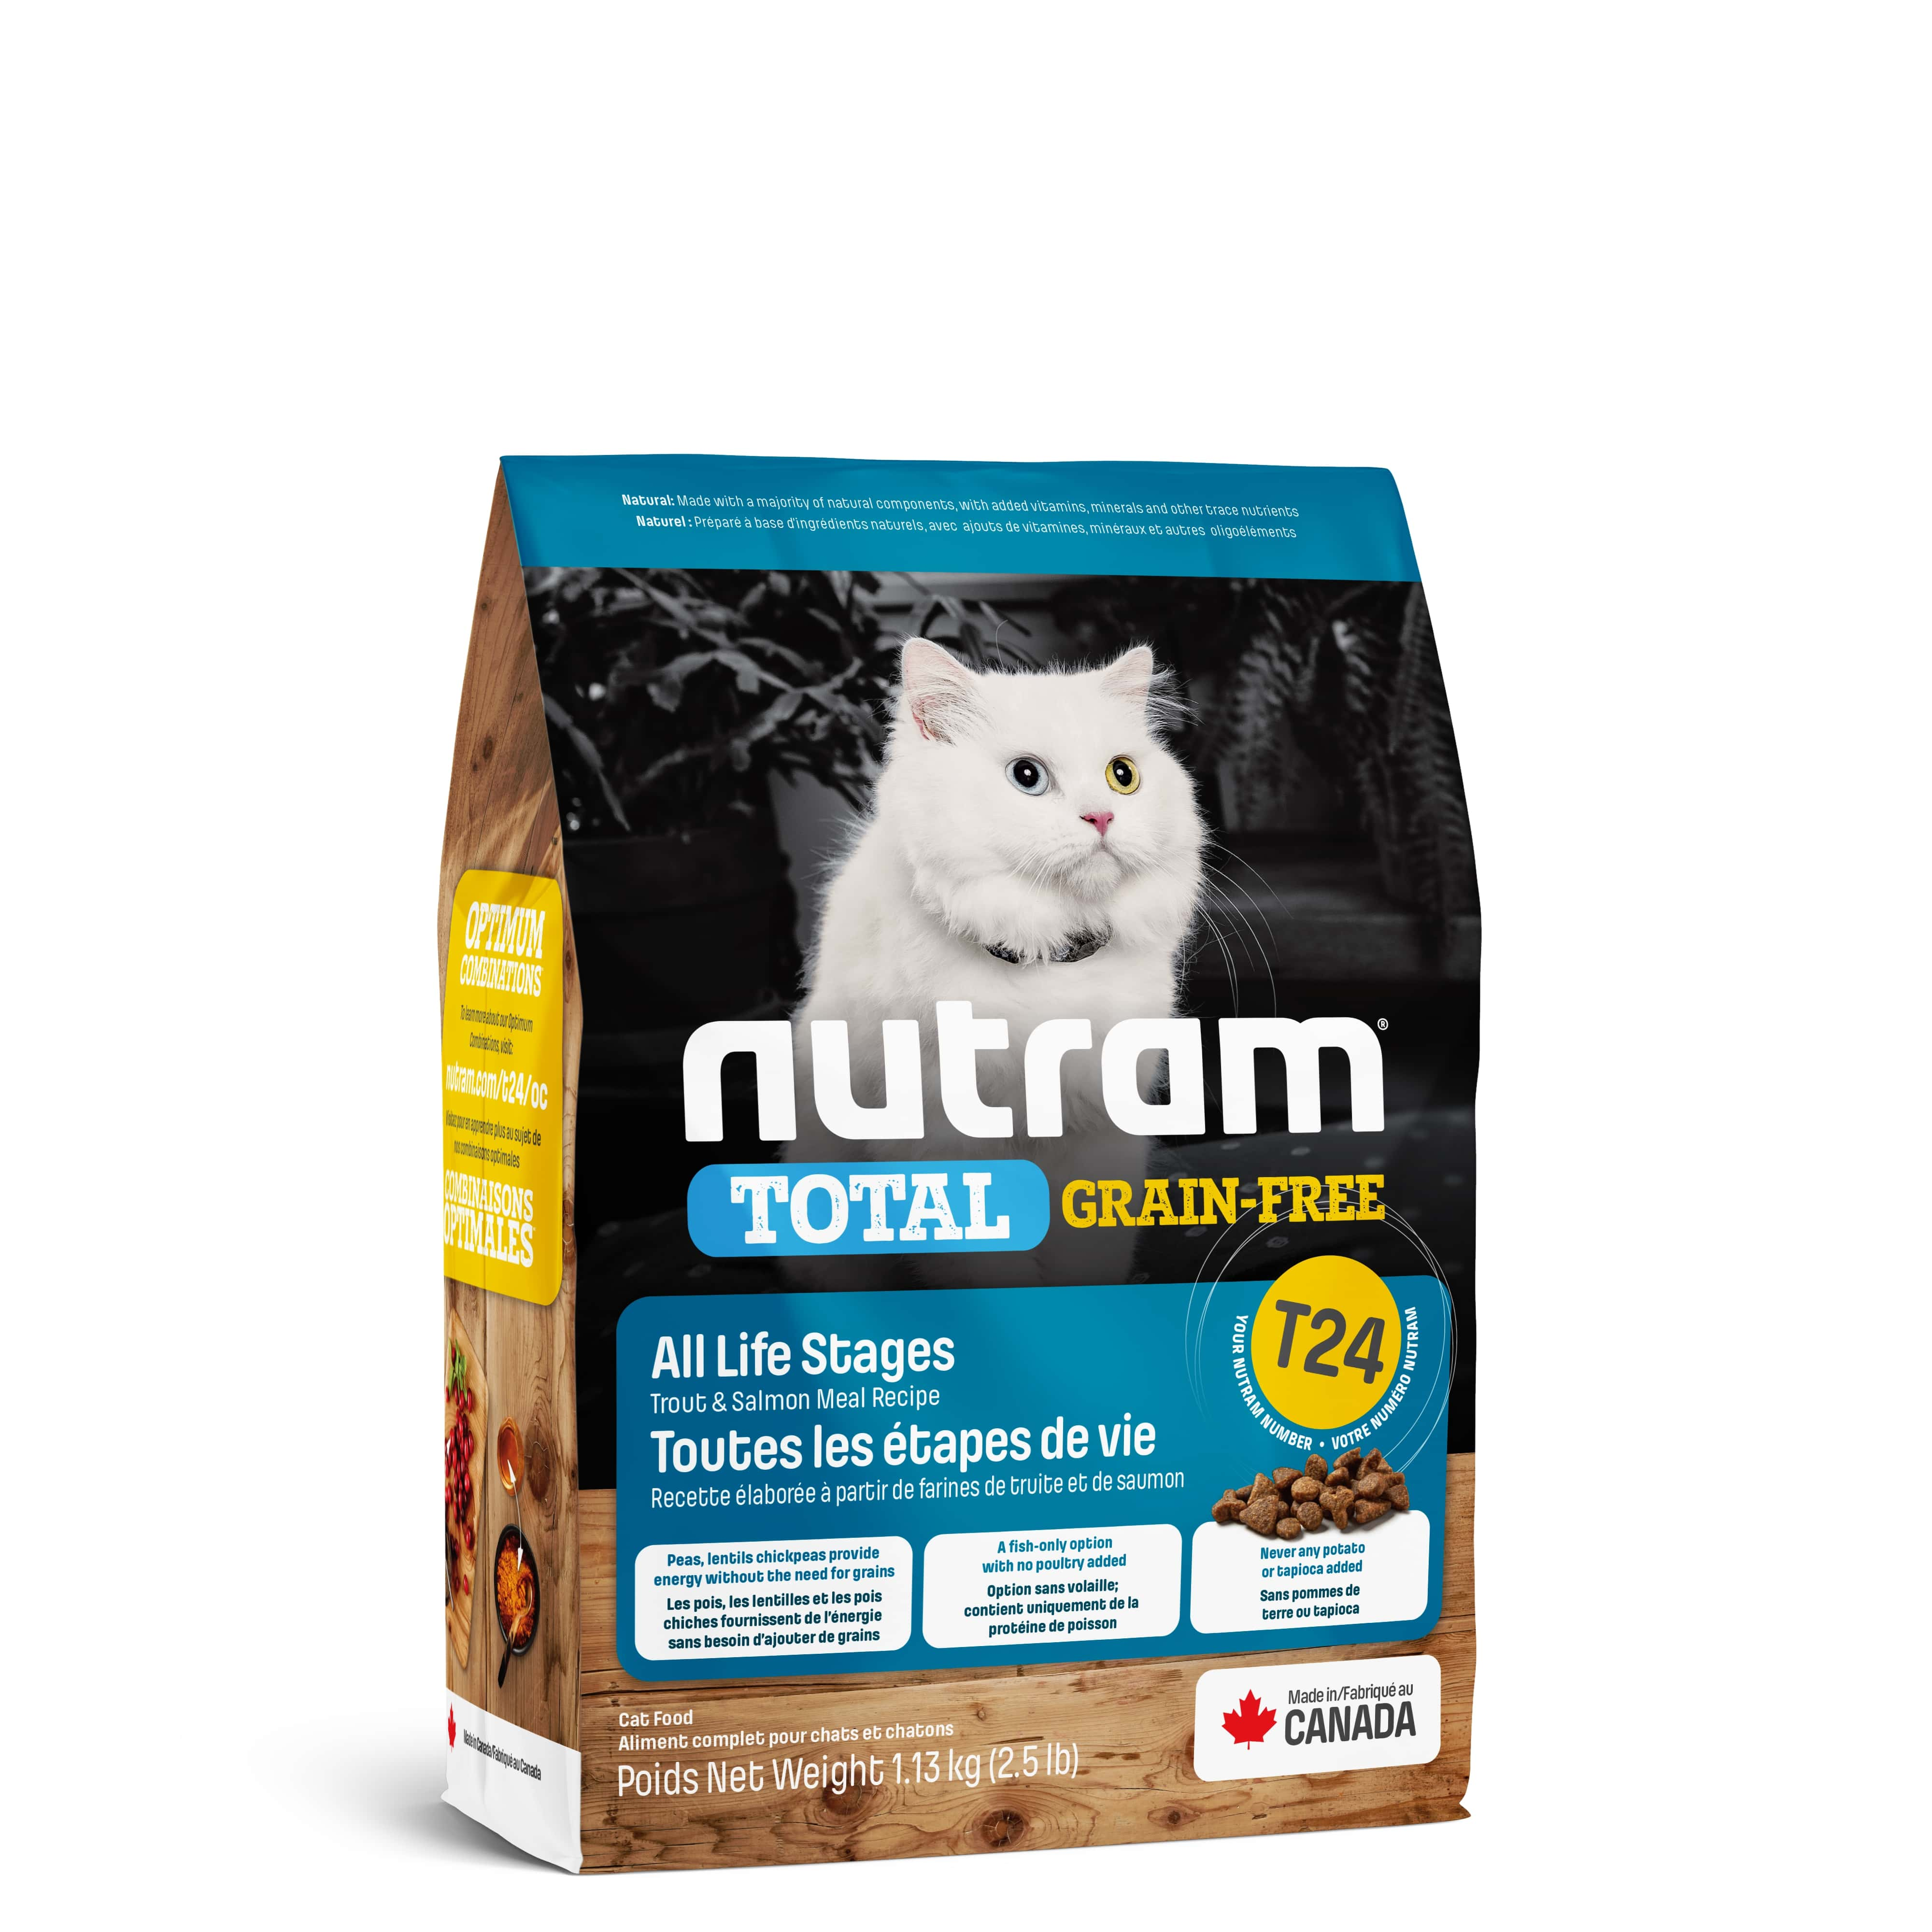 T24 Nutram Total Grain-Free® Salmon & Trout Cat Food